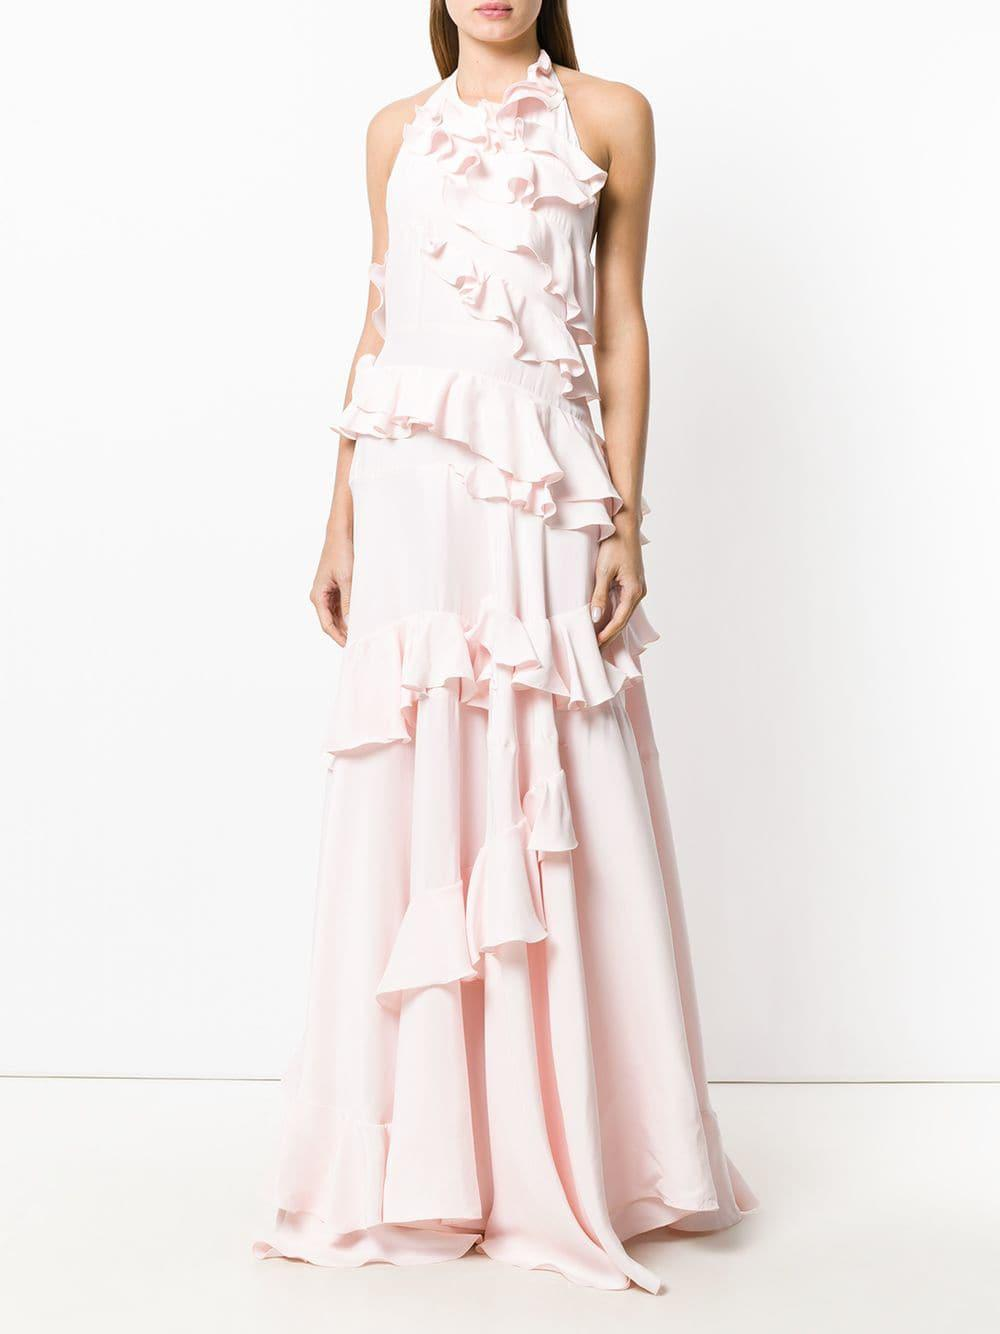 9f589529d9082 Lyst - Maison Rabih Kayrouz Ruffle Trimmed Gown in Pink - Save 2%